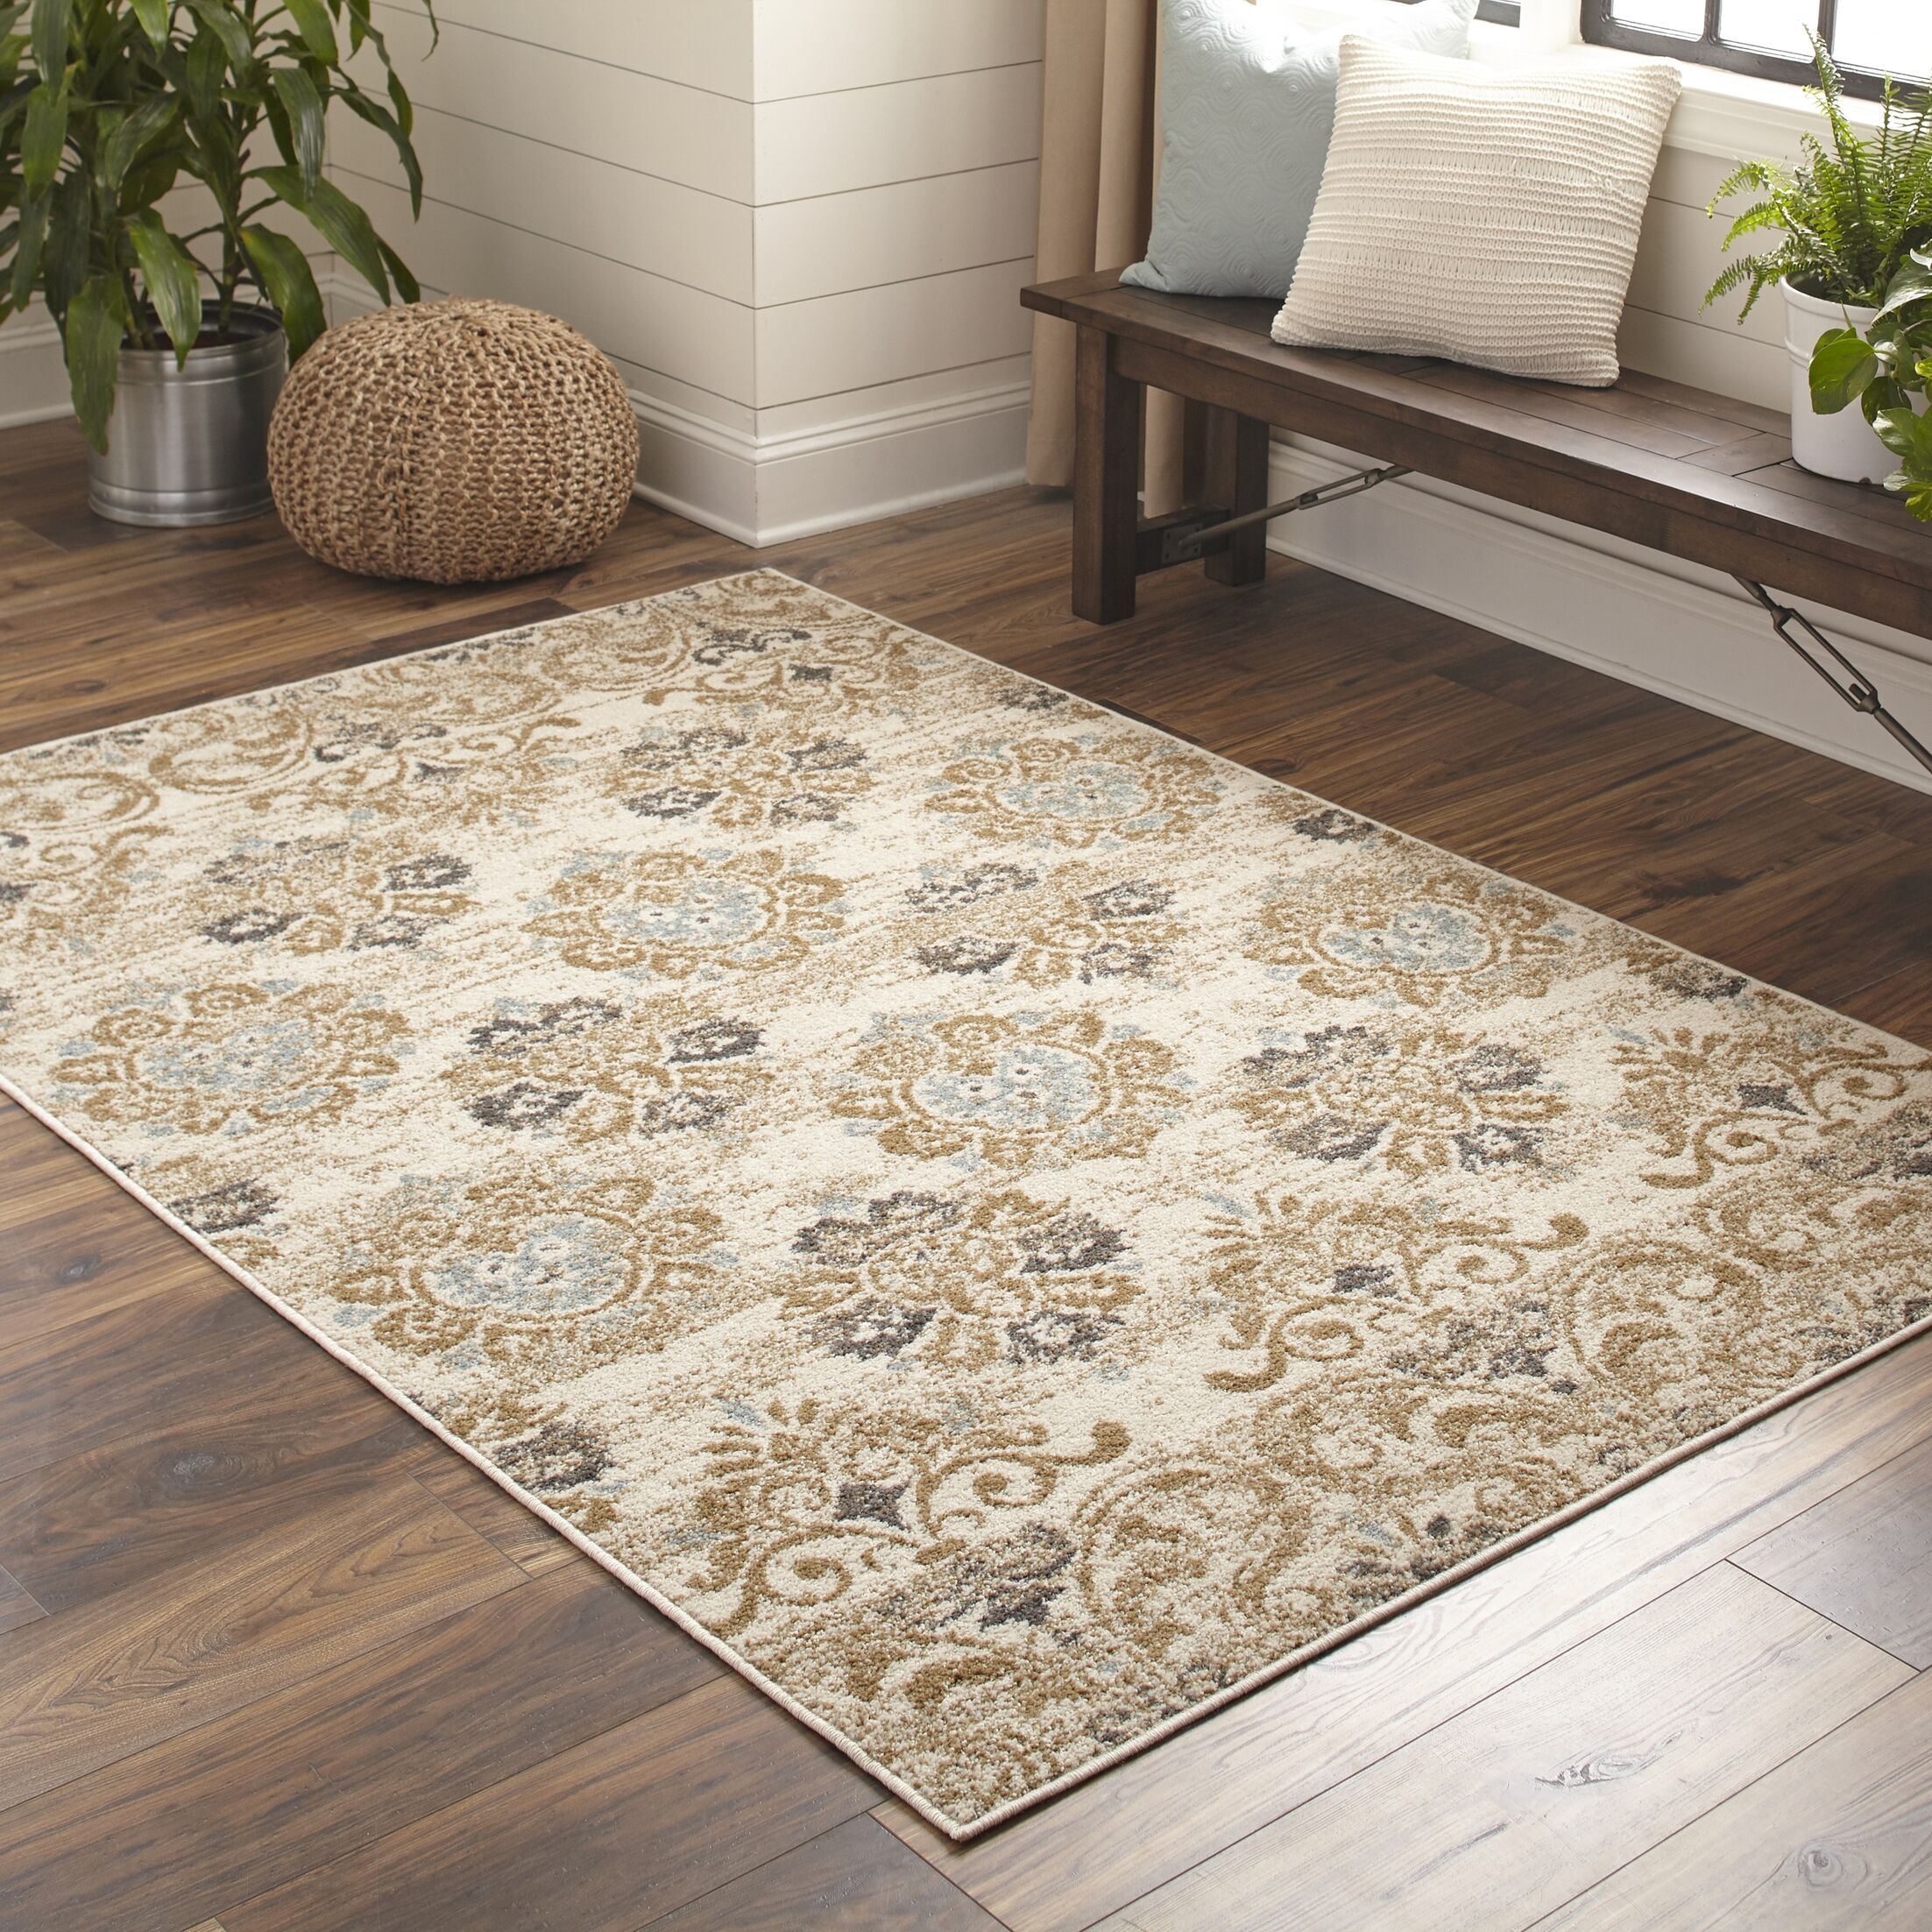 Suffield Ivory Area Rug Rug Size: Rectangle 6'7